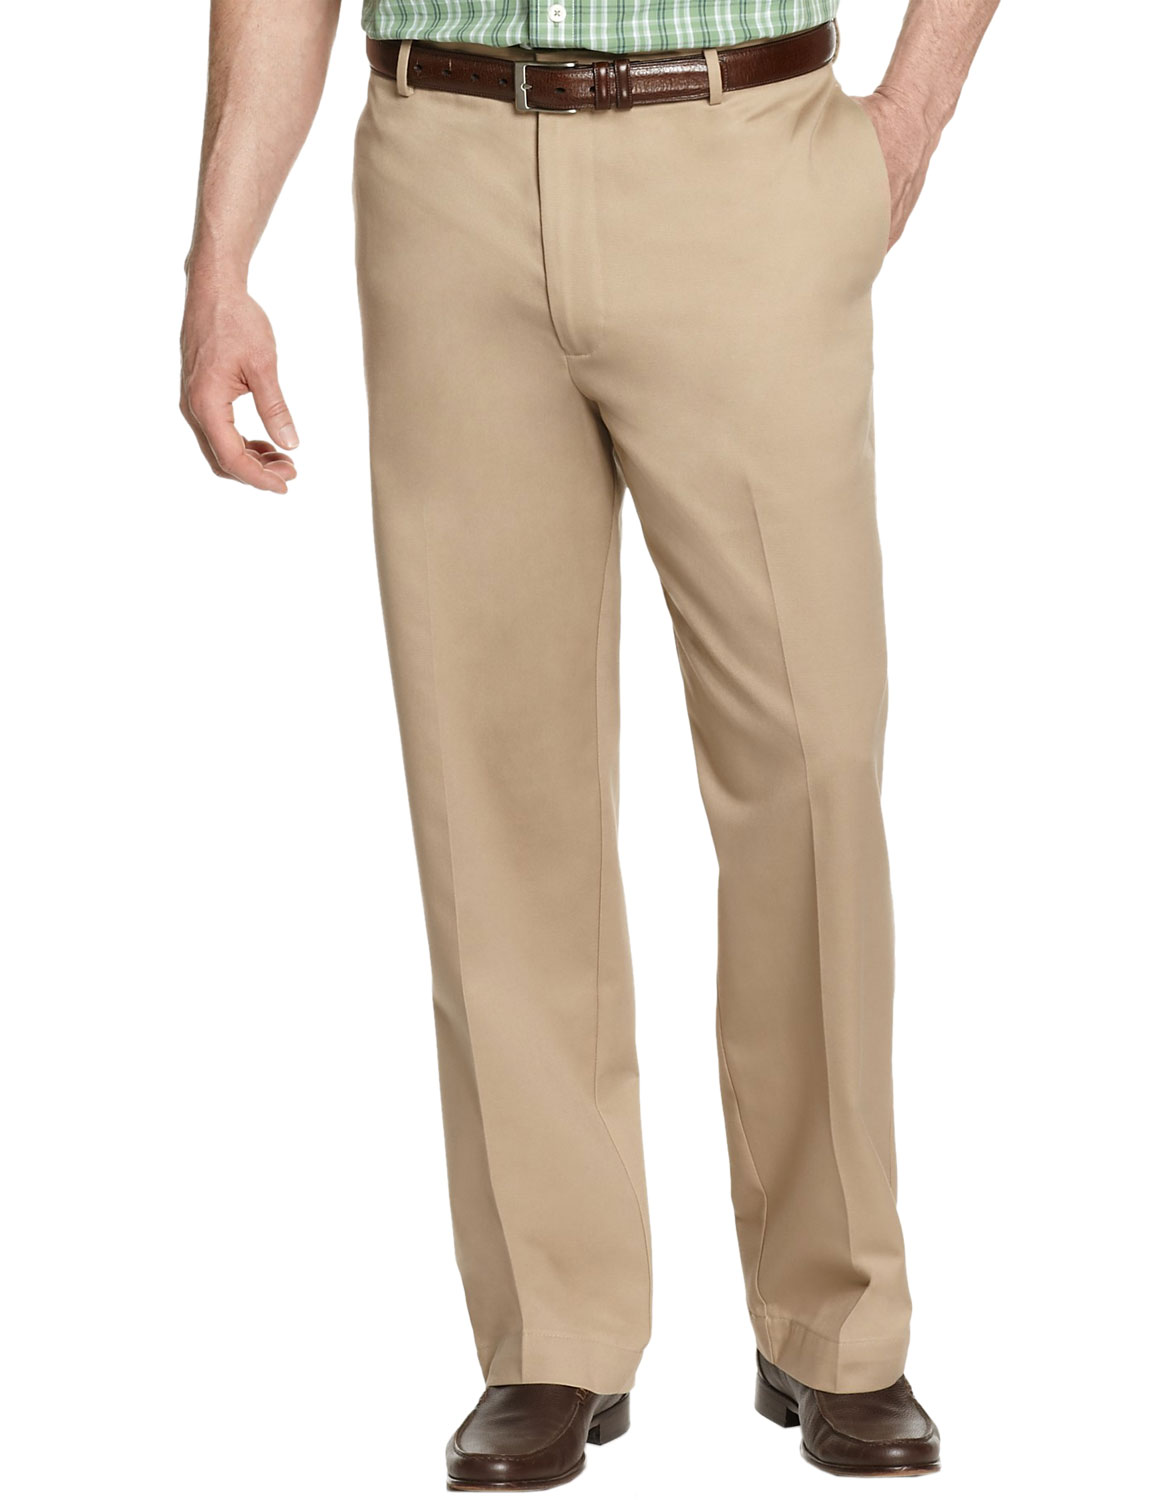 IZOD Big and Tall Mens American Chino Extend Twill Pants Khaki 46 x 34